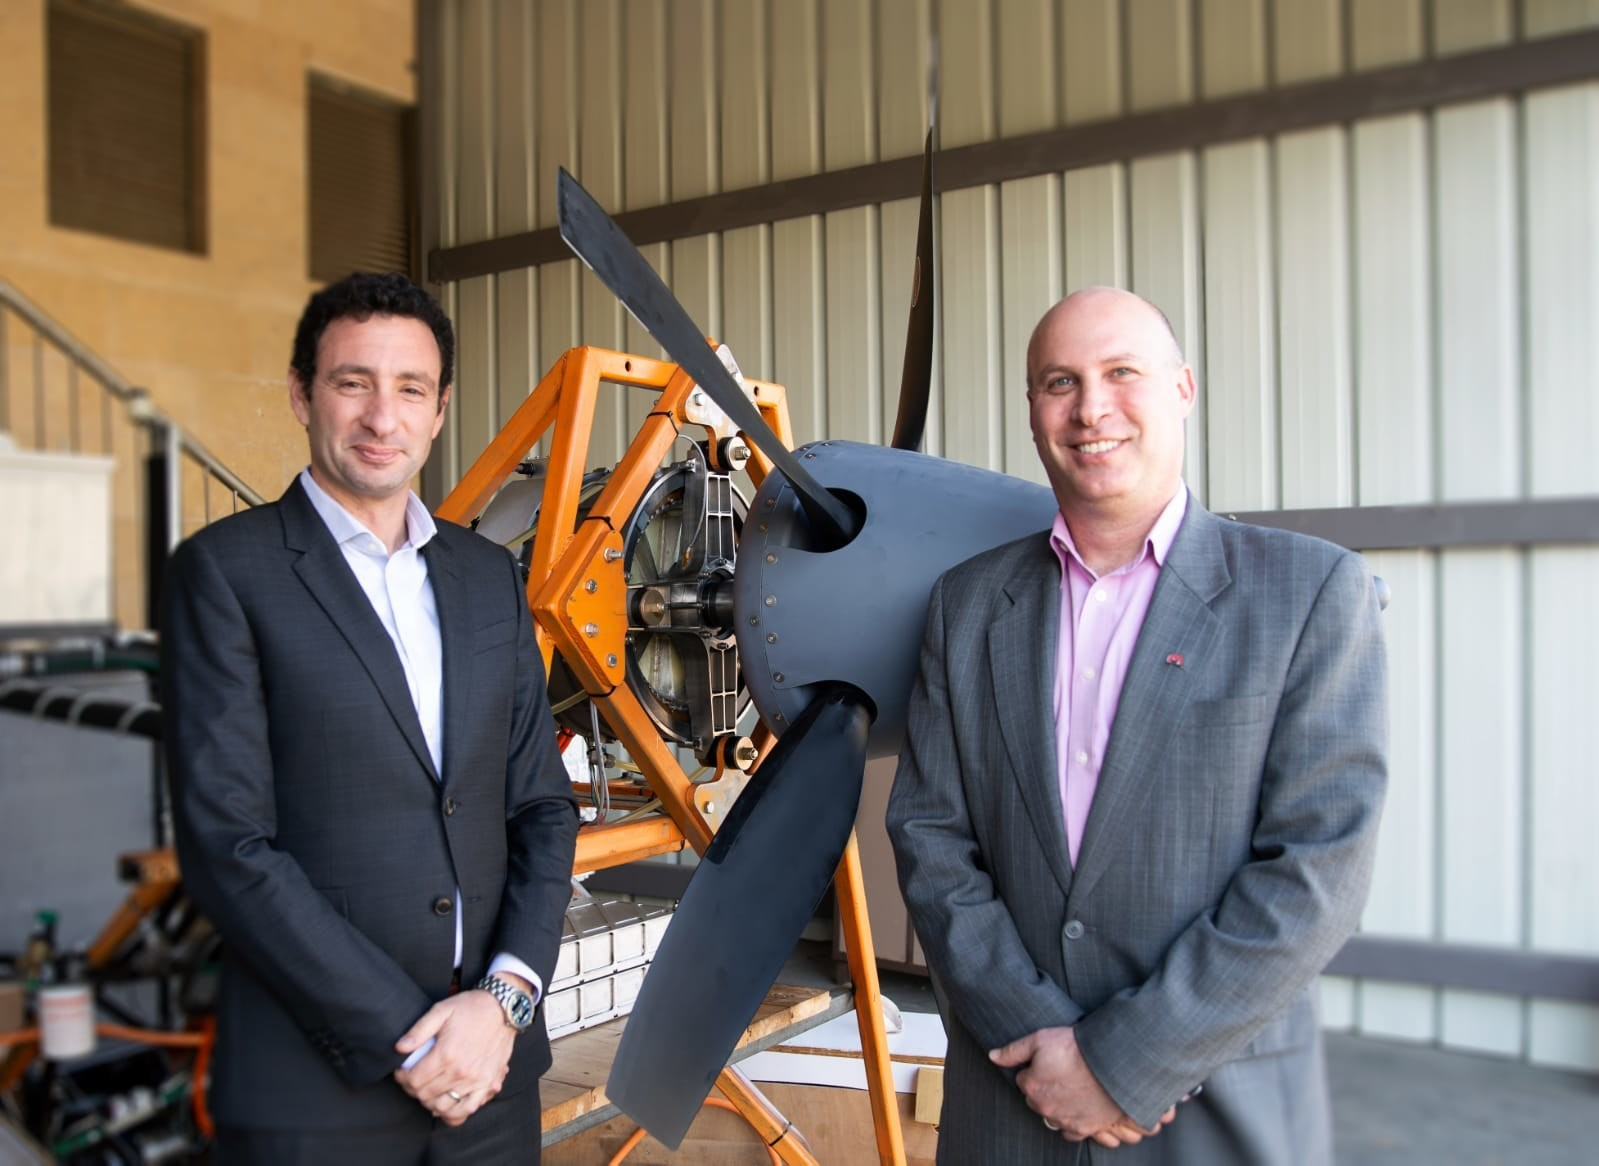 Eviation selects electric propulsion leader magniX to support development of first all-electric plane. Pictured above: Eviation CEO, Omer Bar-Yohay, with magniX CEO, Roei Ganzarski, presenting a magniX motor, which requires no fuel and produces no greenhouse gases.